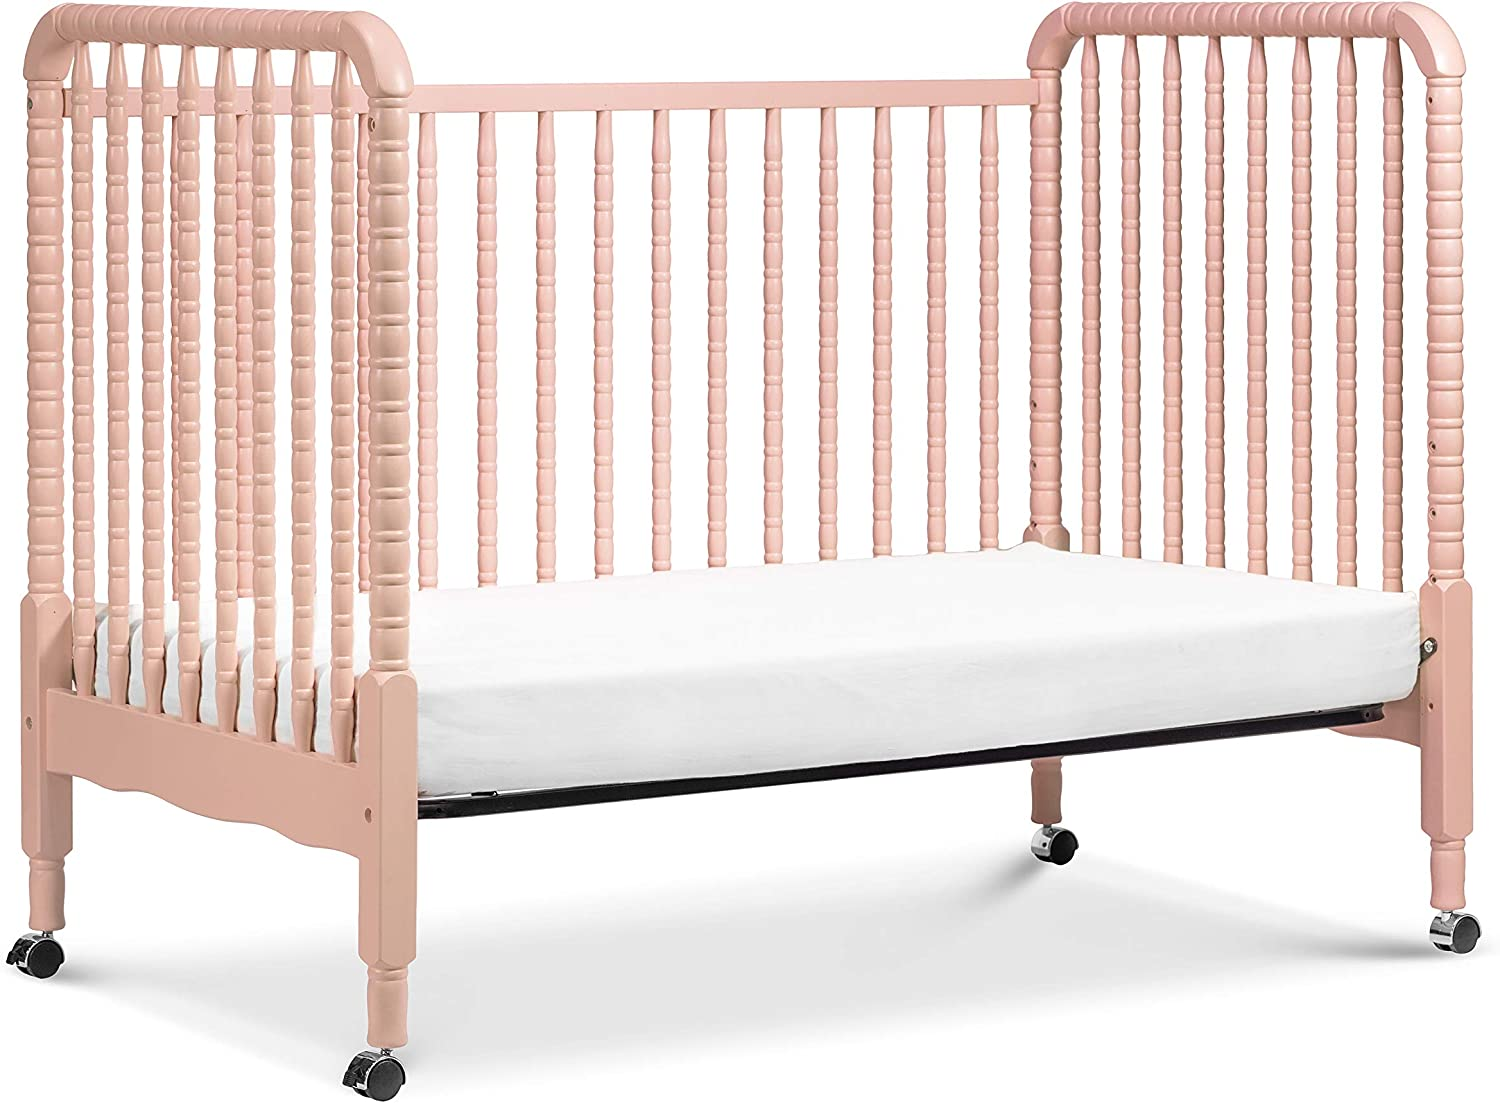 - DaVinci Jenny Lind 3-in-1 Convertible Portable Crib In Blush Pink